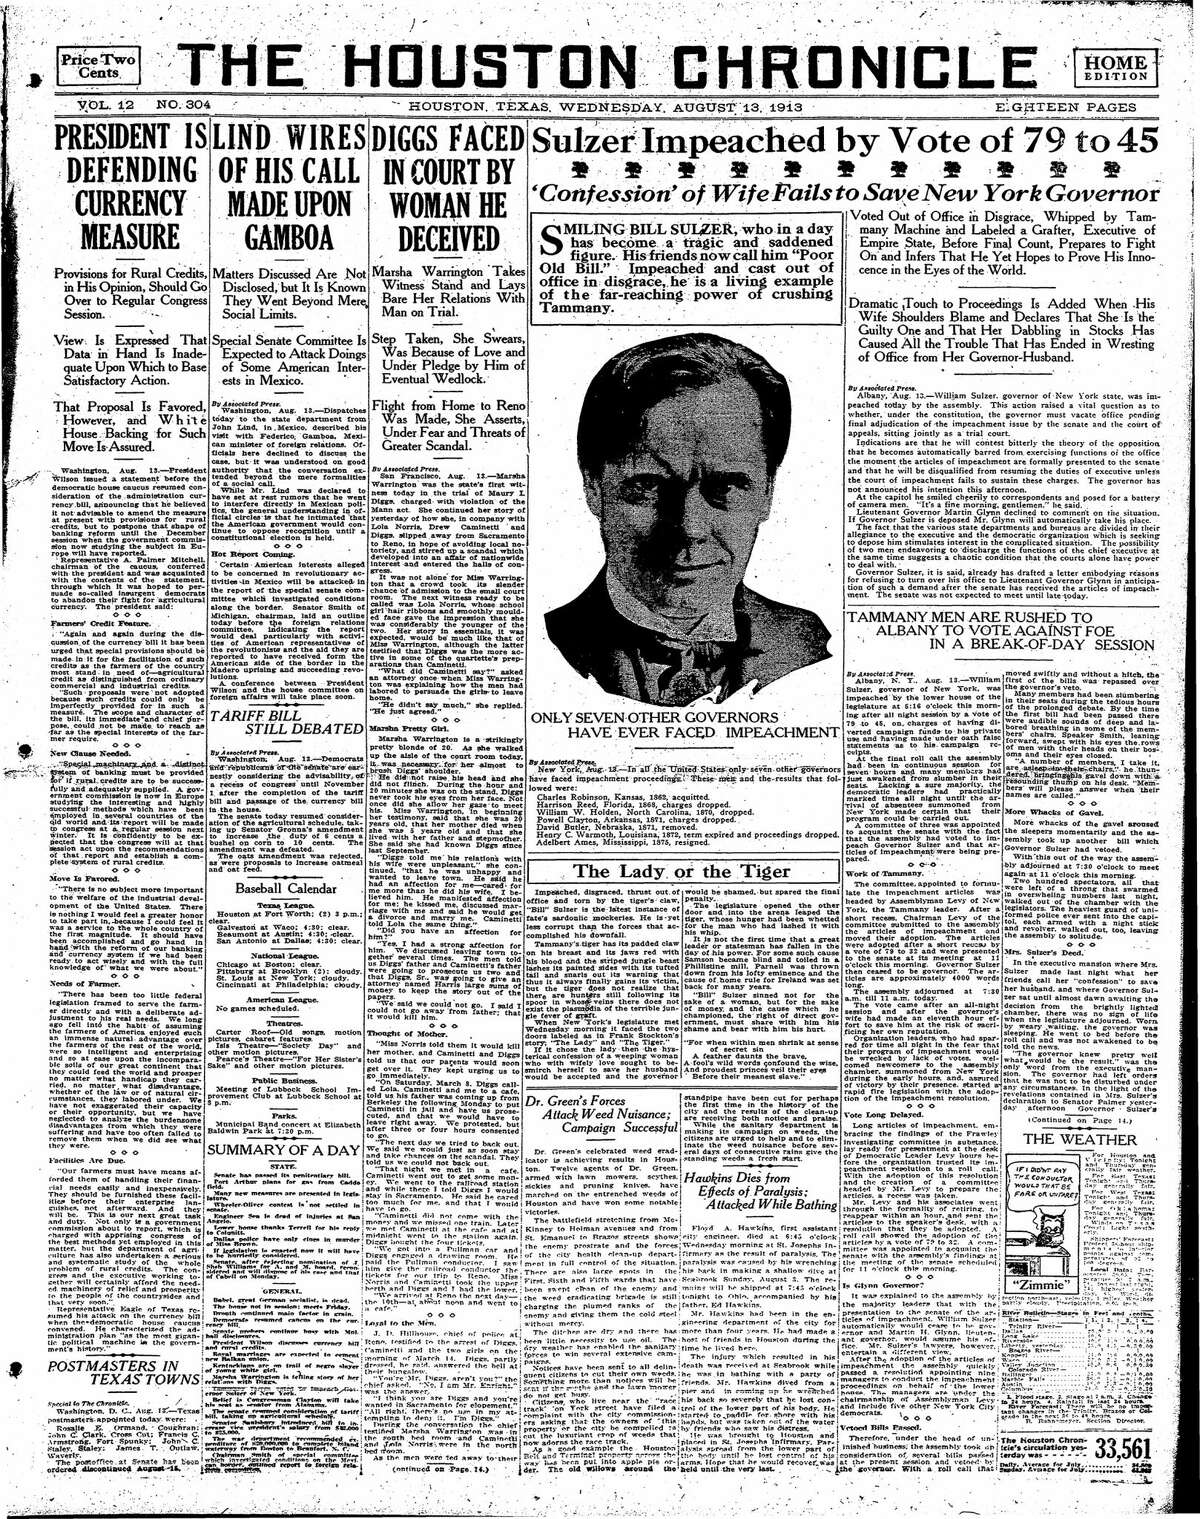 Houston Chronicle front page from Aug. 13, 1913.